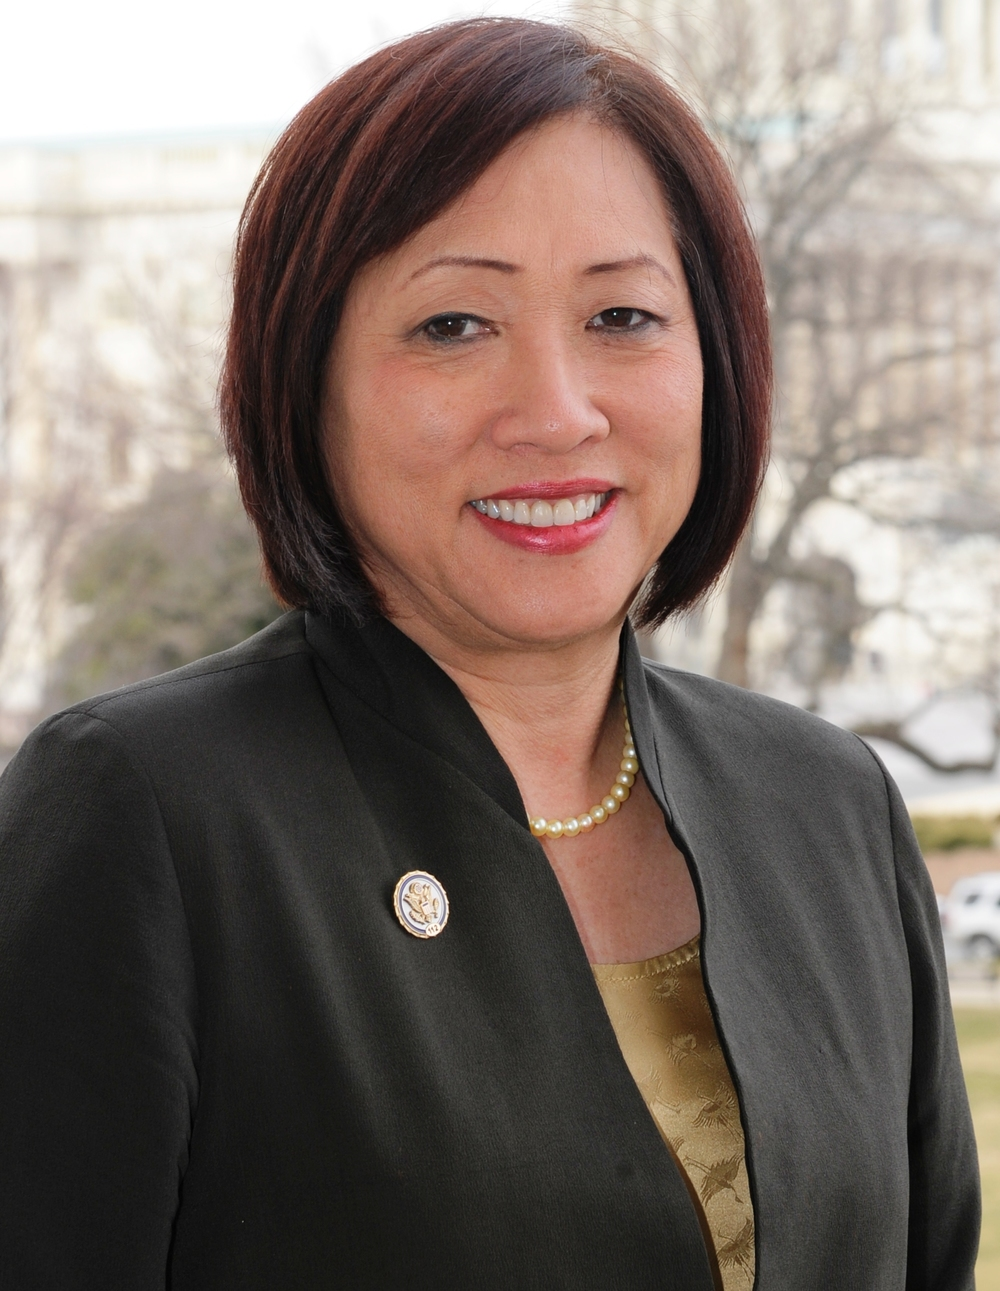 Colleen_Hanabusa_Official_Photo.jpg